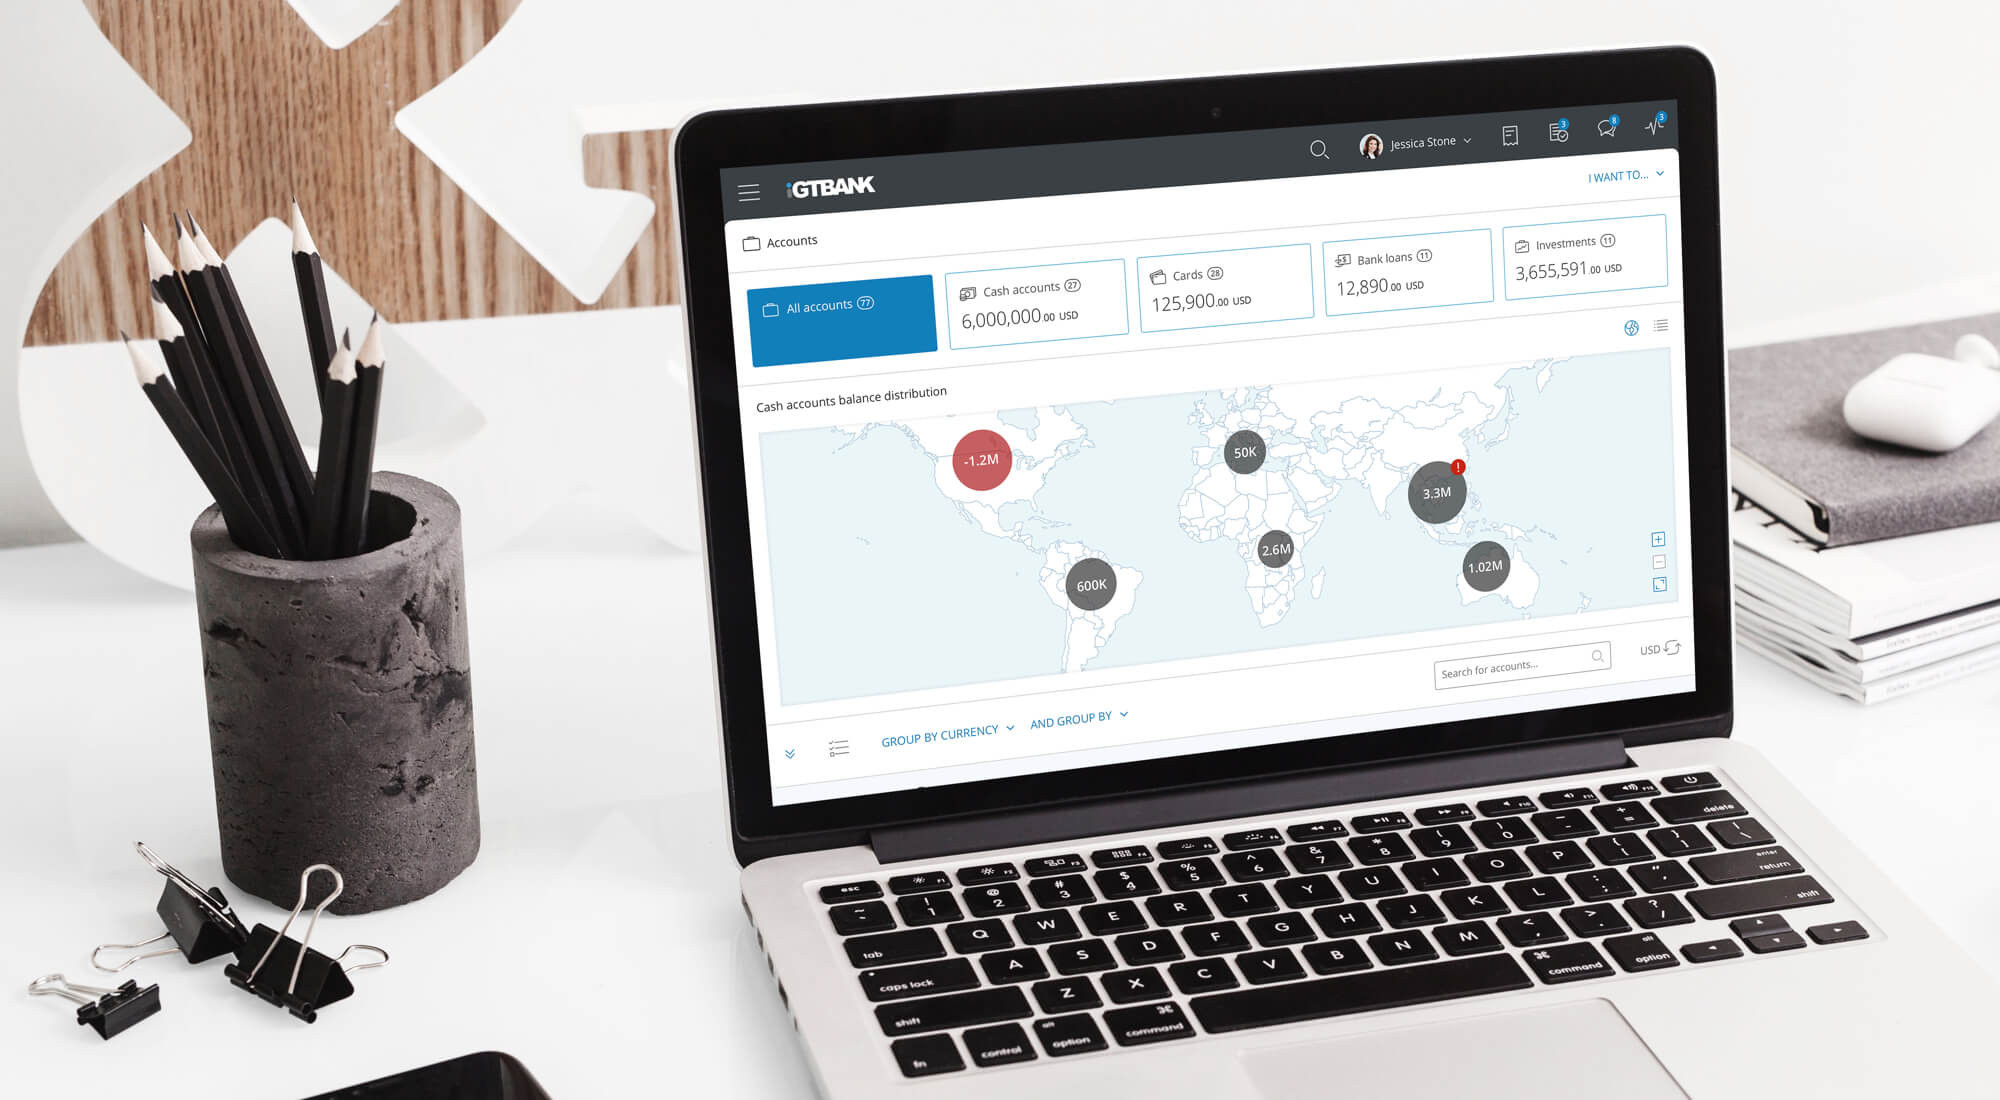 UX Design Success Story: Constant High-Quality Results